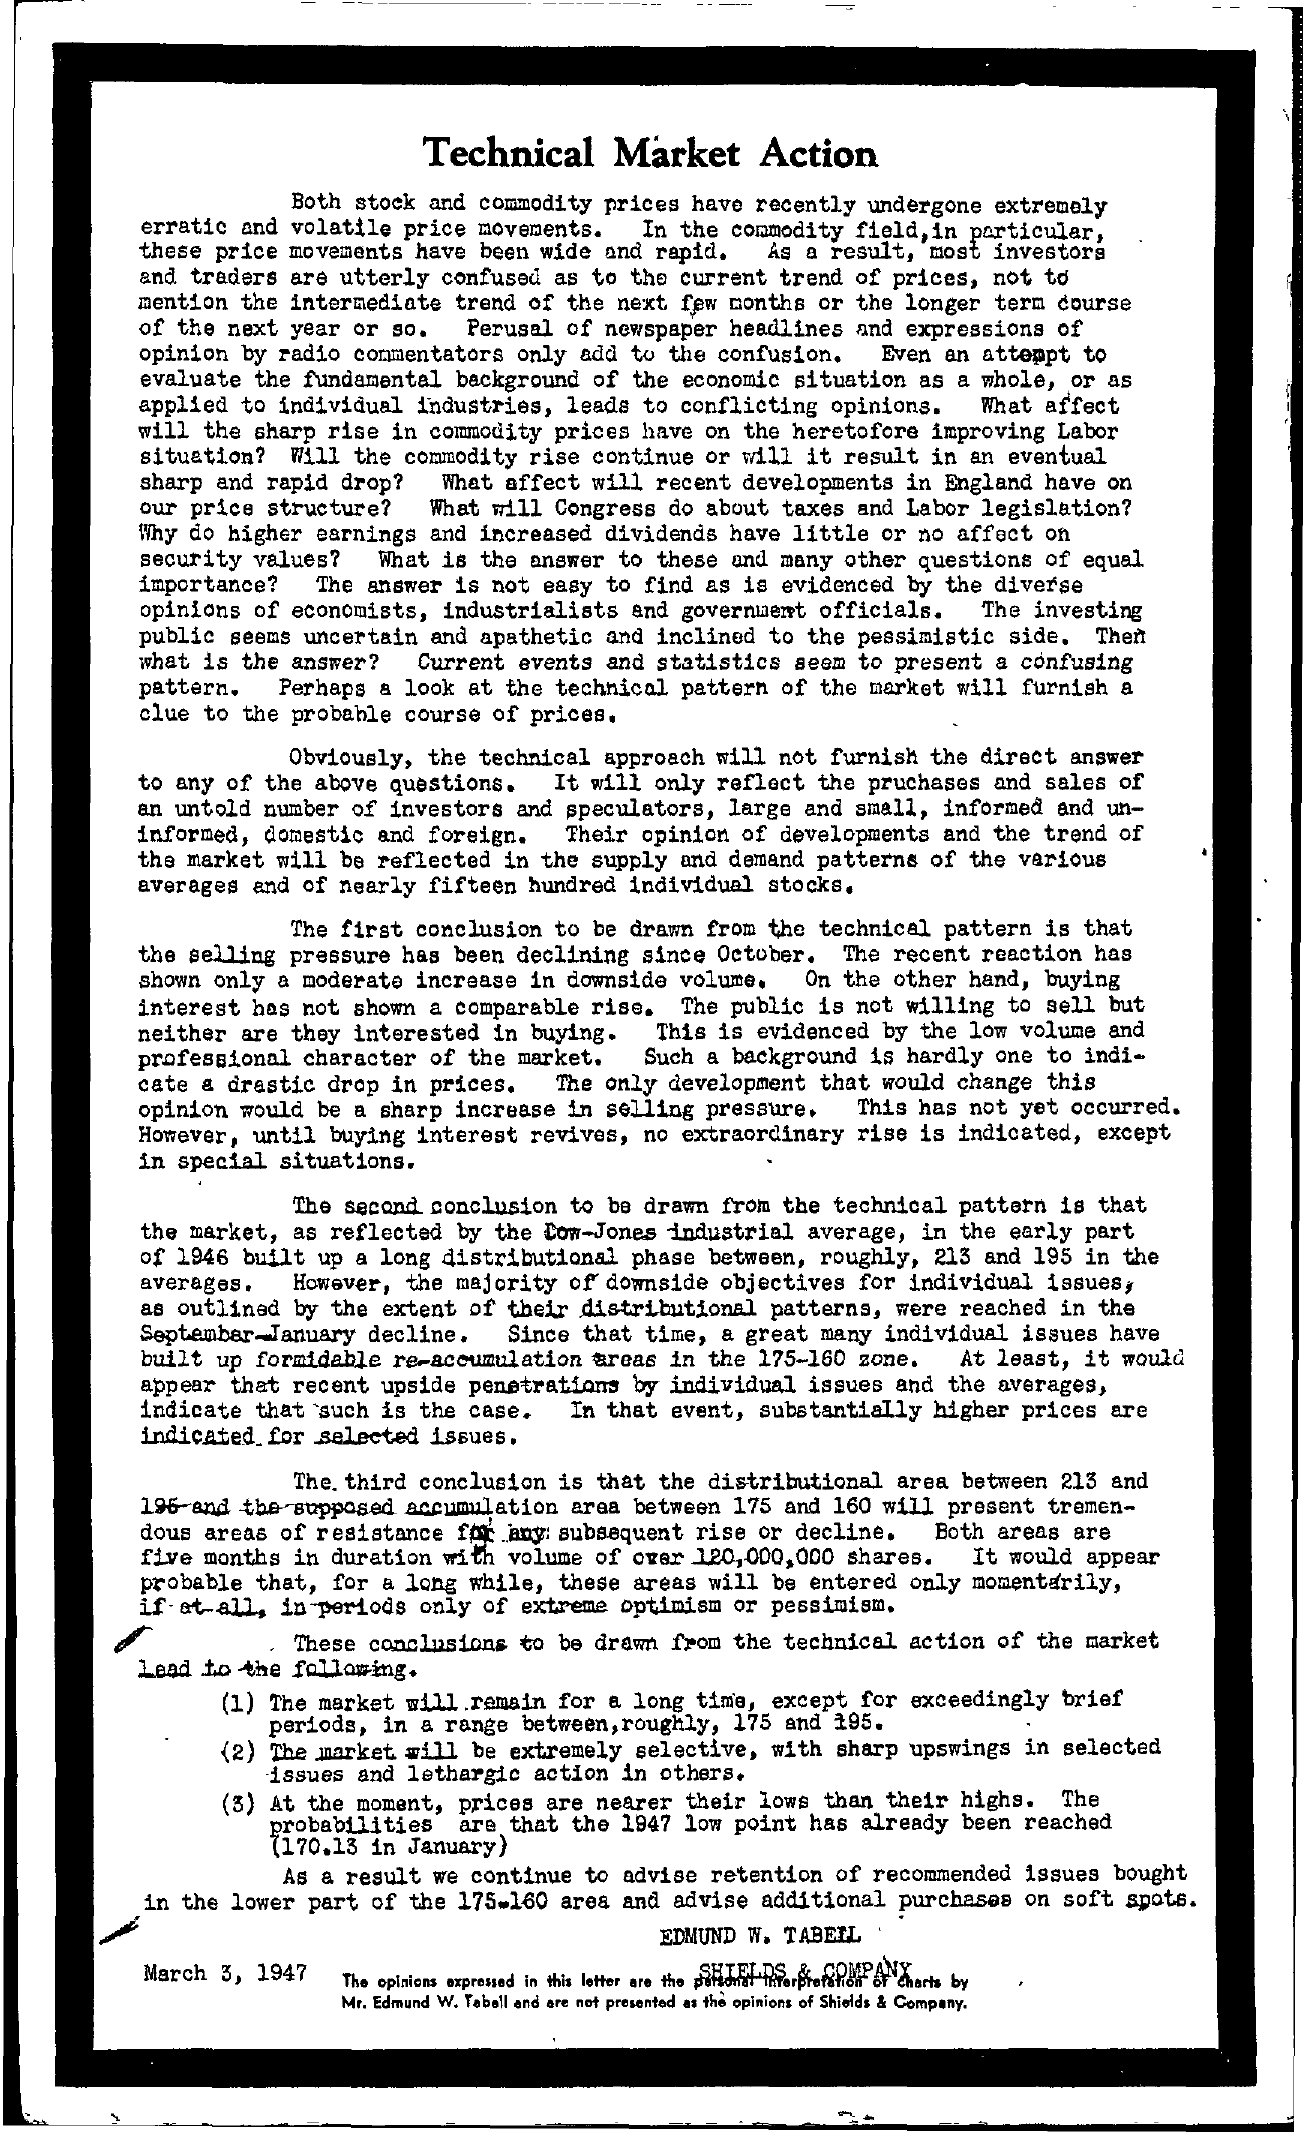 Tabell's Market Letter - March 03, 1947